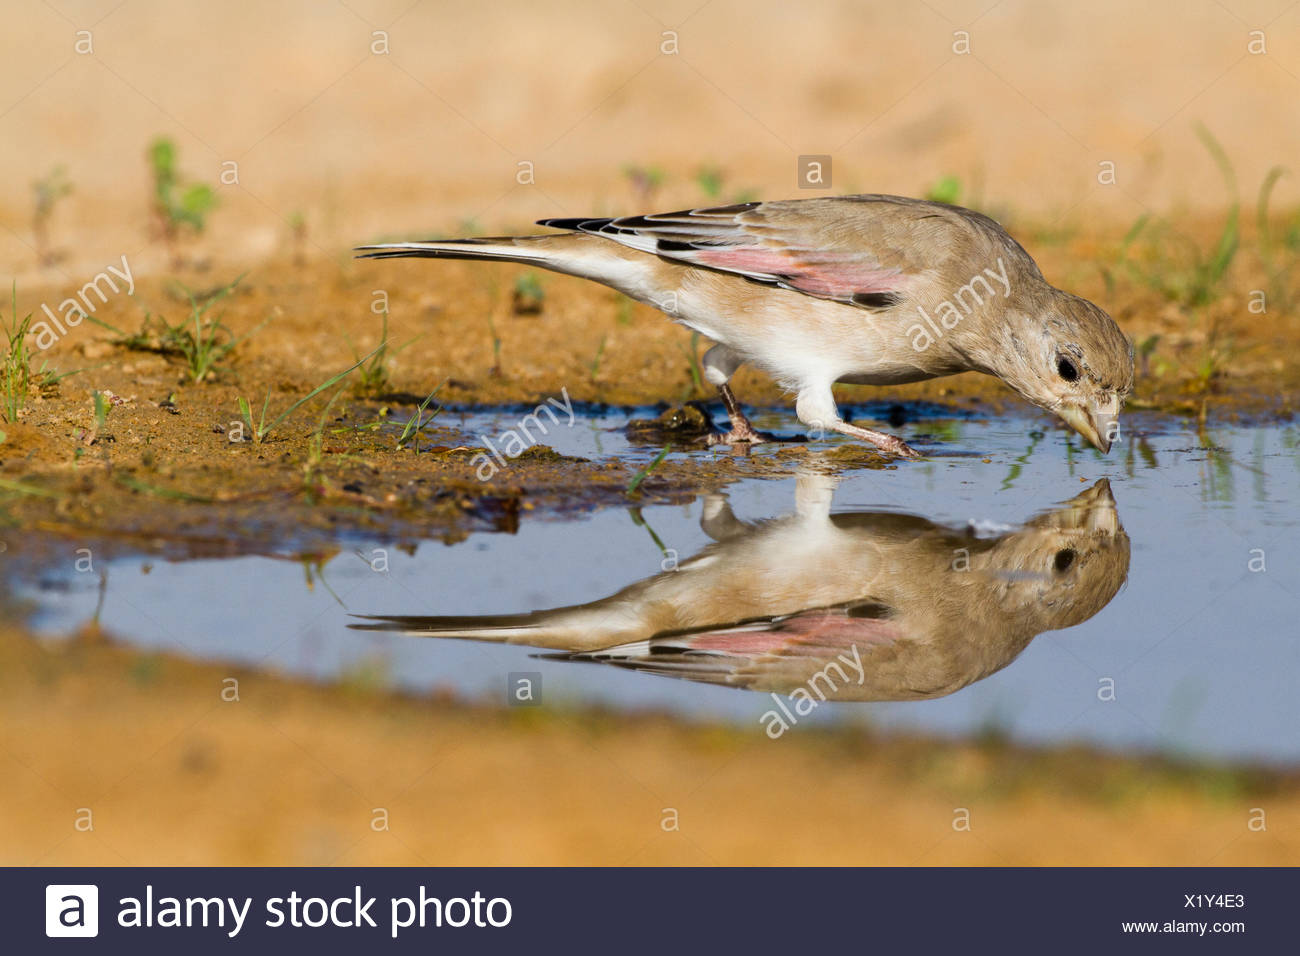 Desert Finch (Carduelis obsoleta) near a puddle of water in the Negev desert, israel - Stock Image